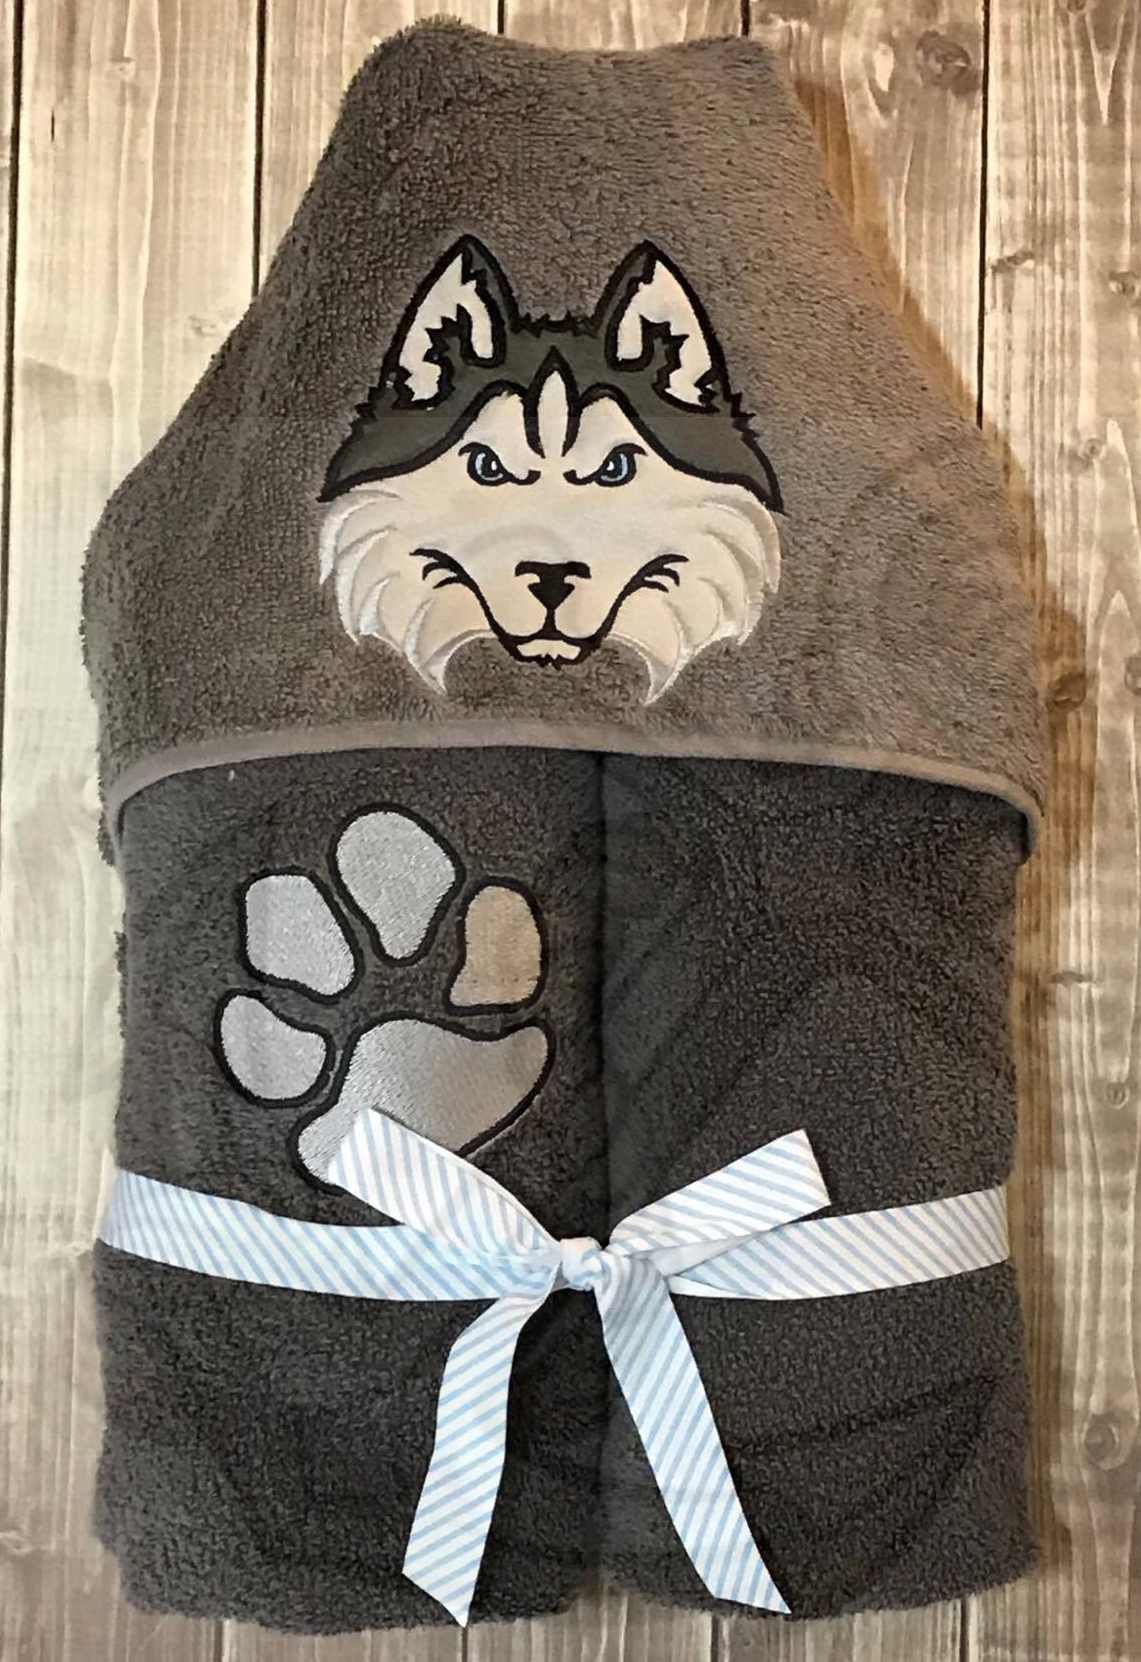 Husky Dog Peeker Applique Design With Paw Print 2 Designs 3 Sizes